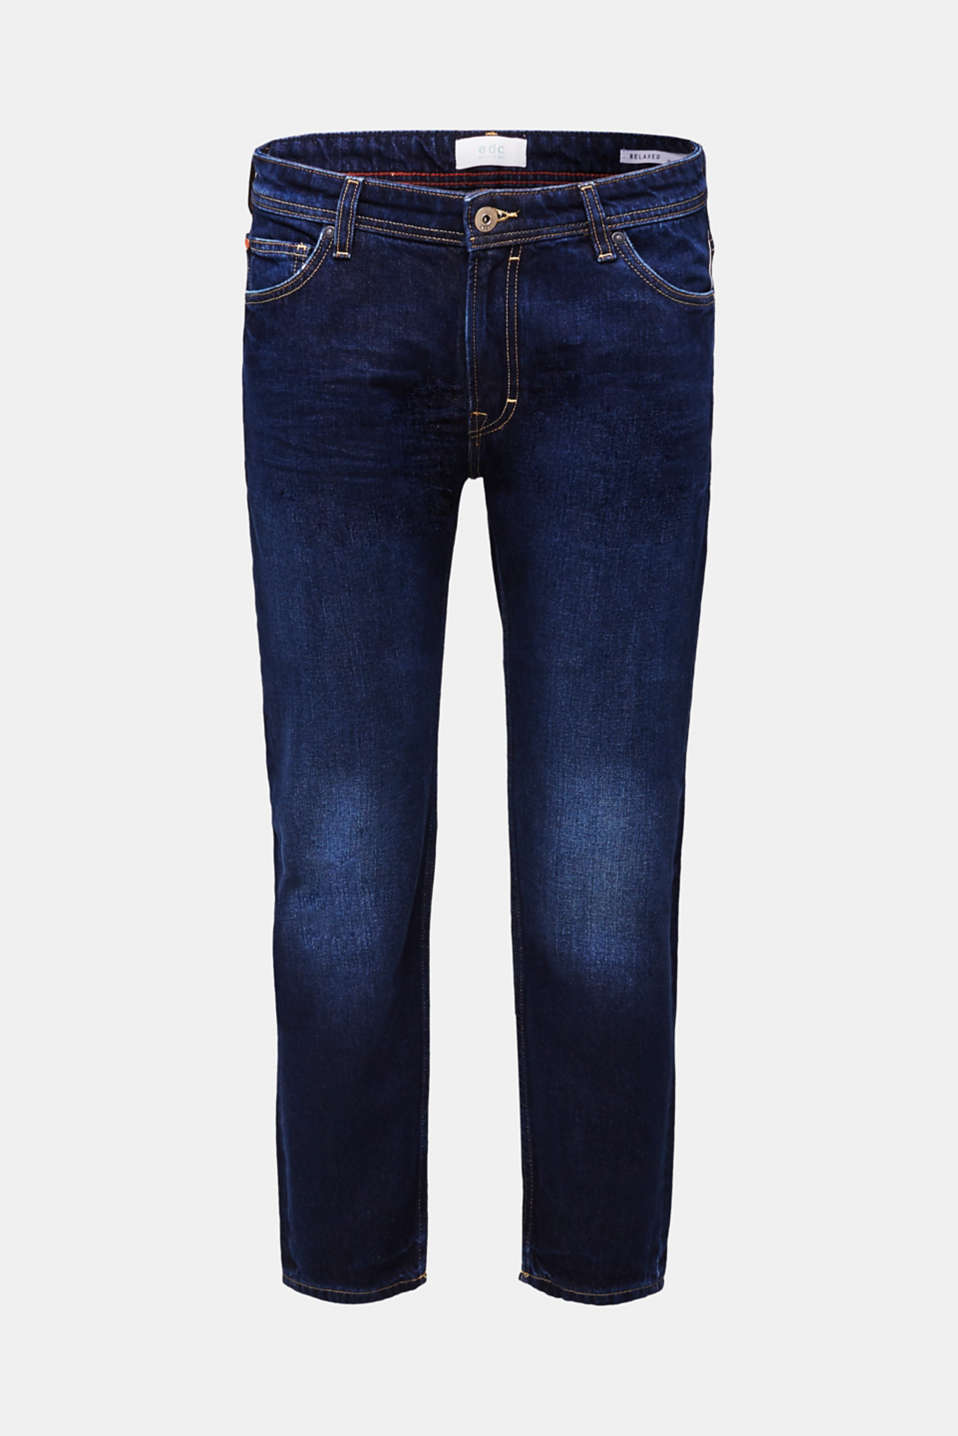 Jeans in 100% cotton, BLUE DARK WASH, detail image number 6